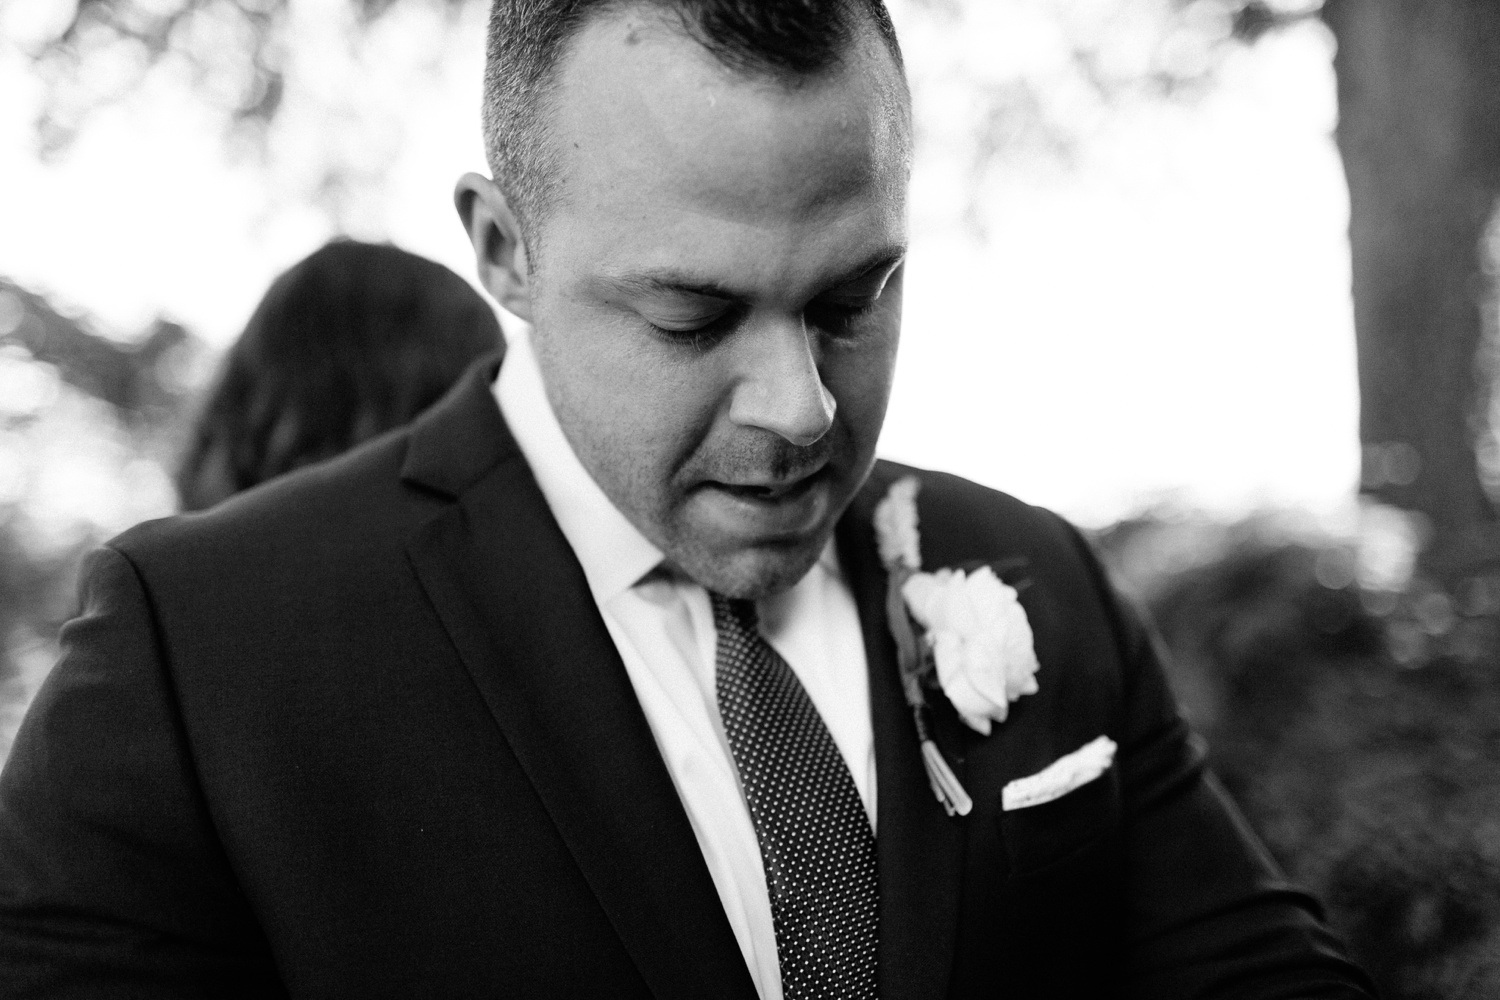 Kadee + Tyler | a raw, emotional wedding at the Filter Building on White Rock Lake in Dallas, TX by North Texas Wedding Photographer, Rachel Meagan Photography 053